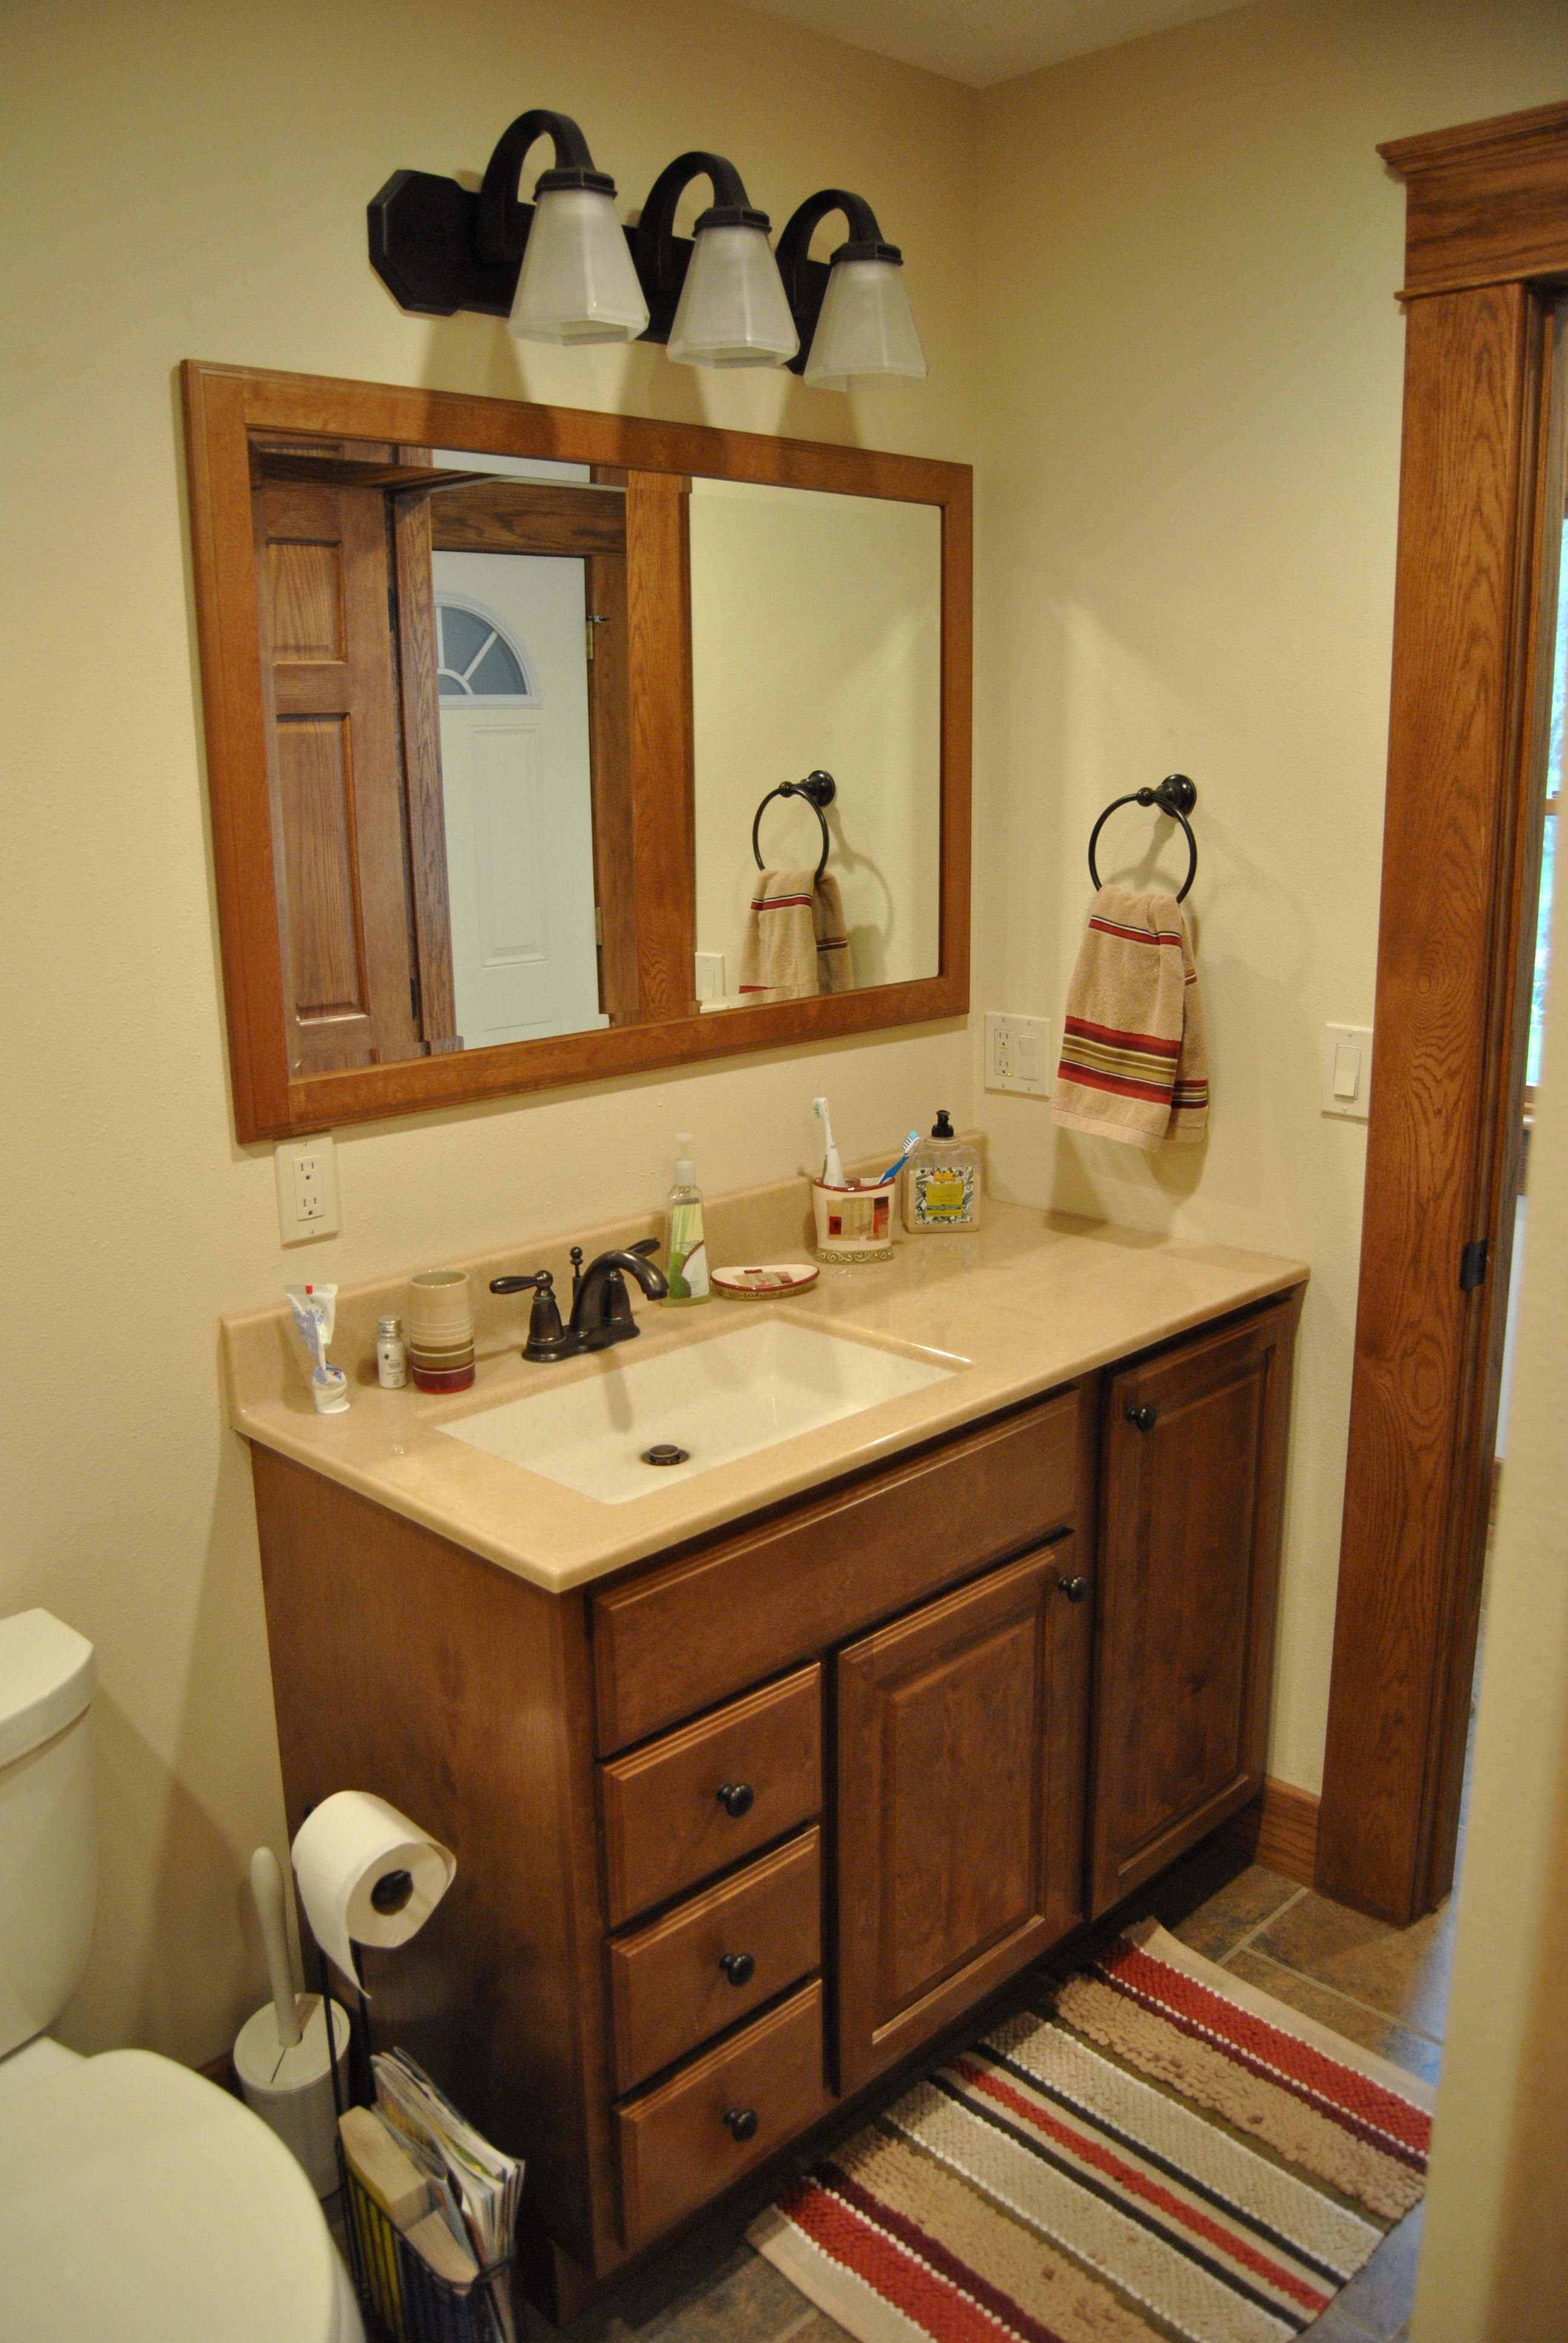 Bathroom Cabinets Quebec Of Bertch Bath Cabinets In Birch With Quebec Door Style And